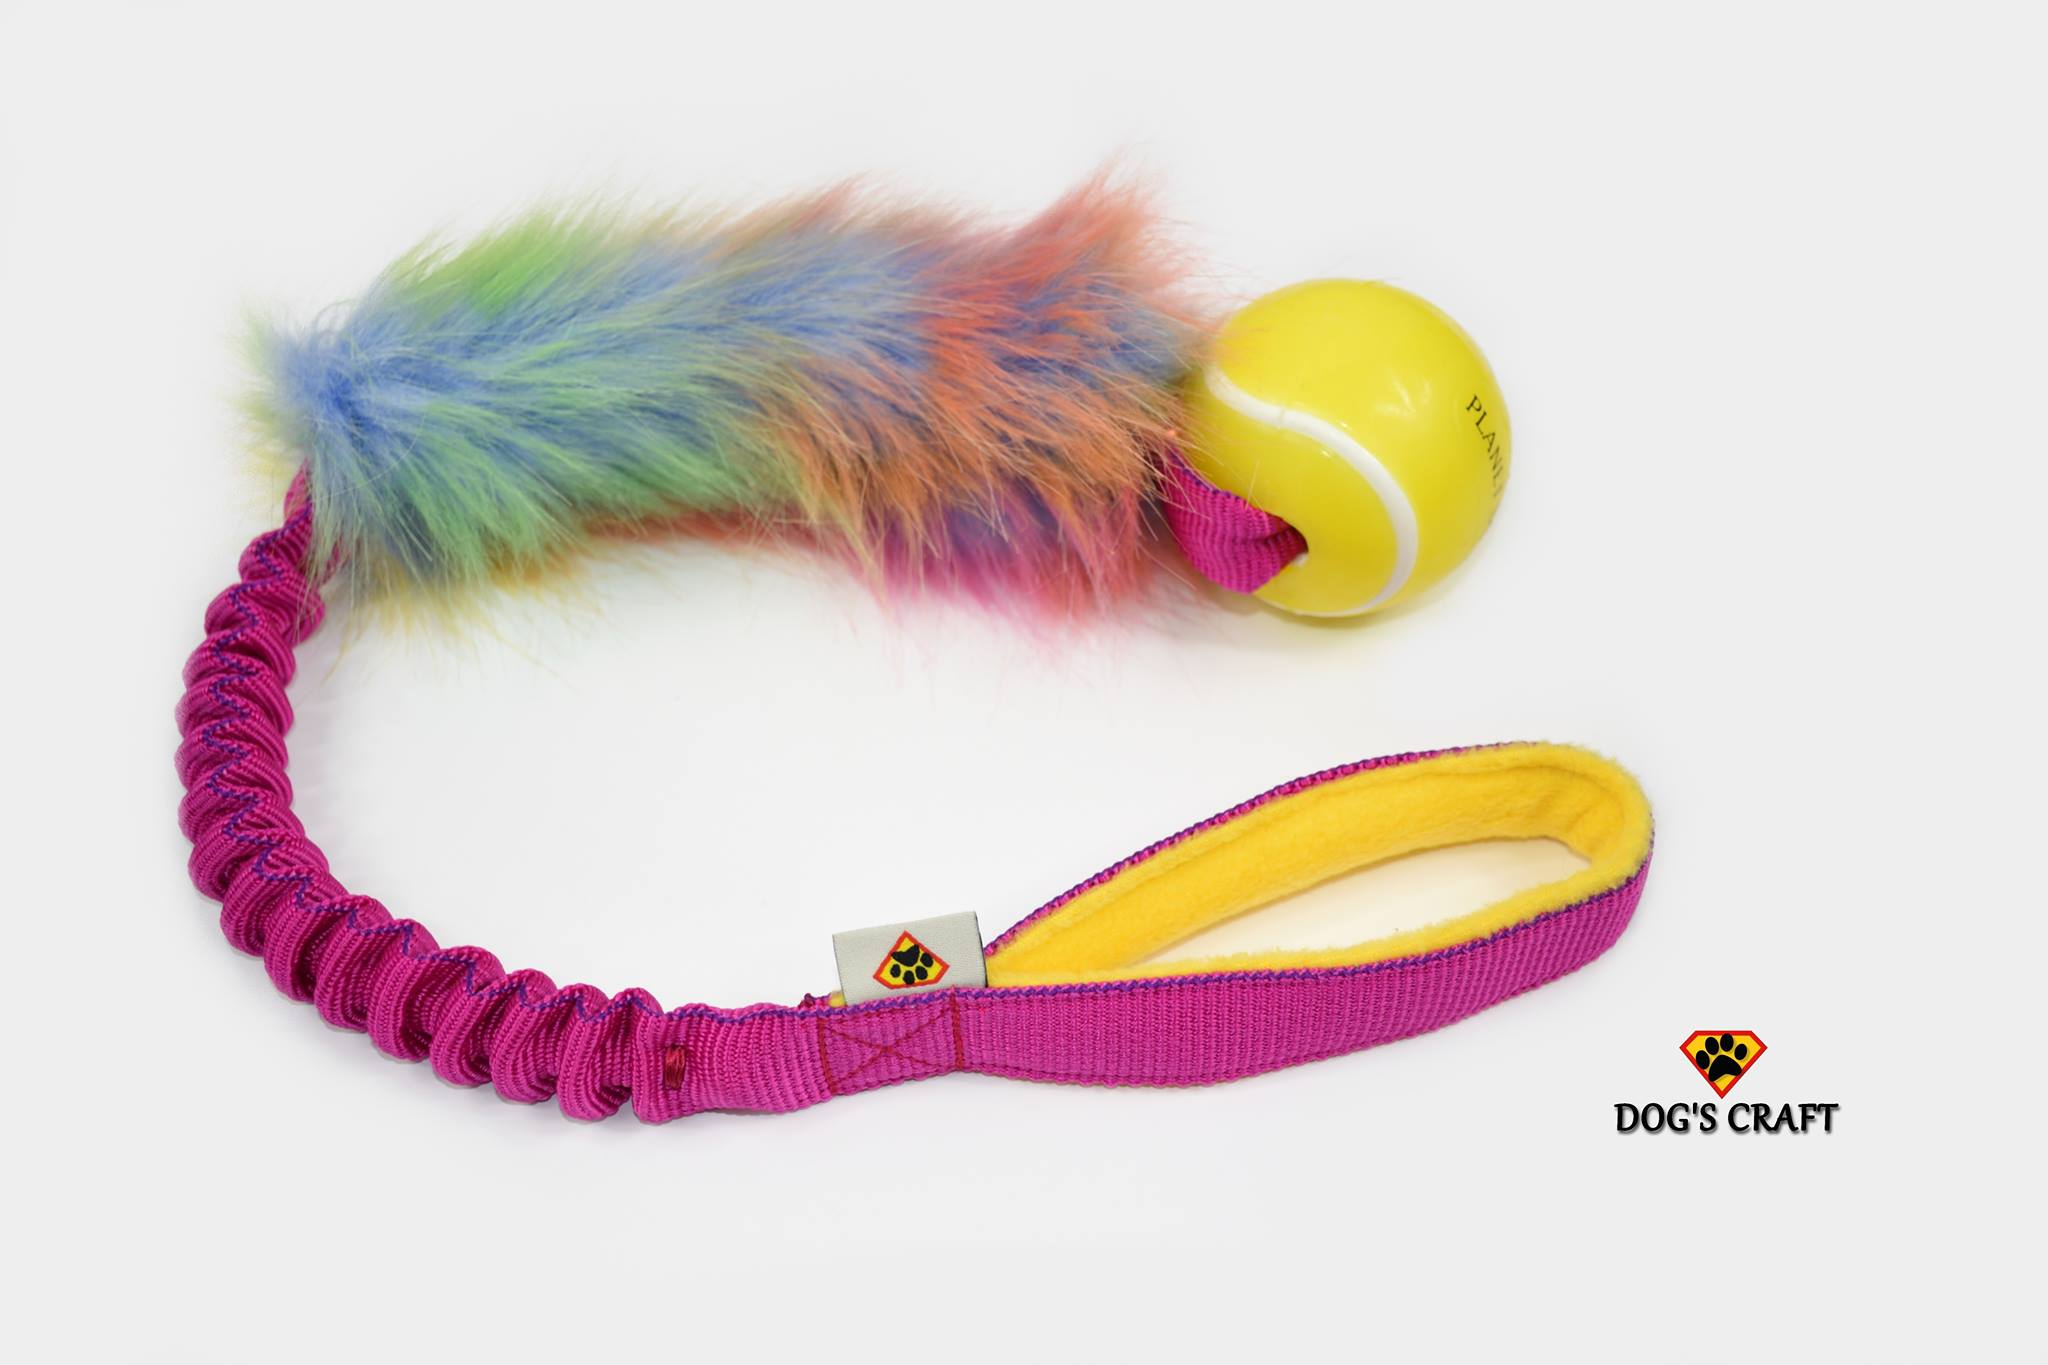 Unicorn fur w/- Planet Dog tennis ball bungee tug